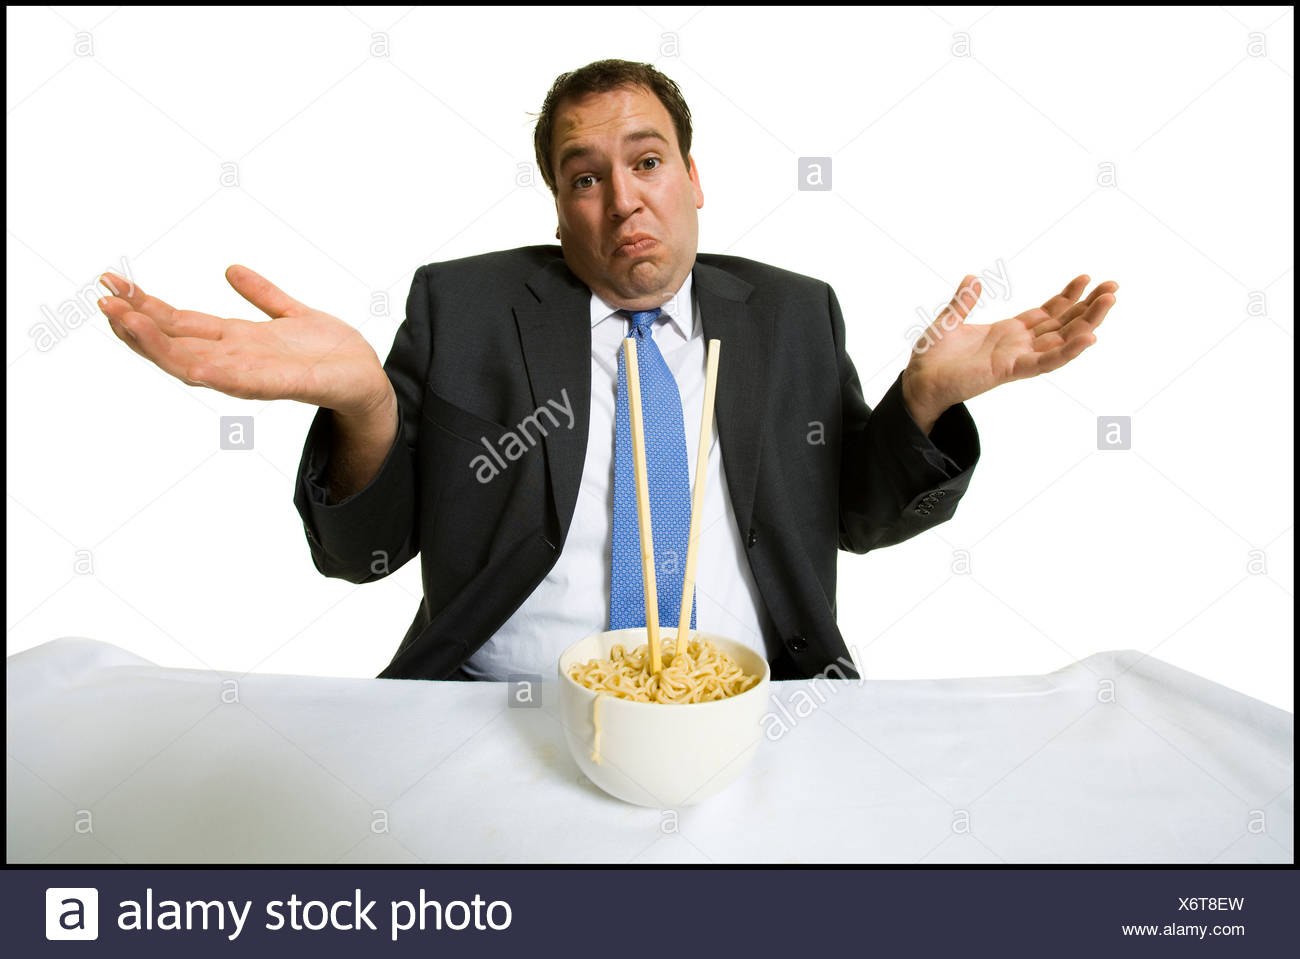 Businessmen eating noodles Stock Photo